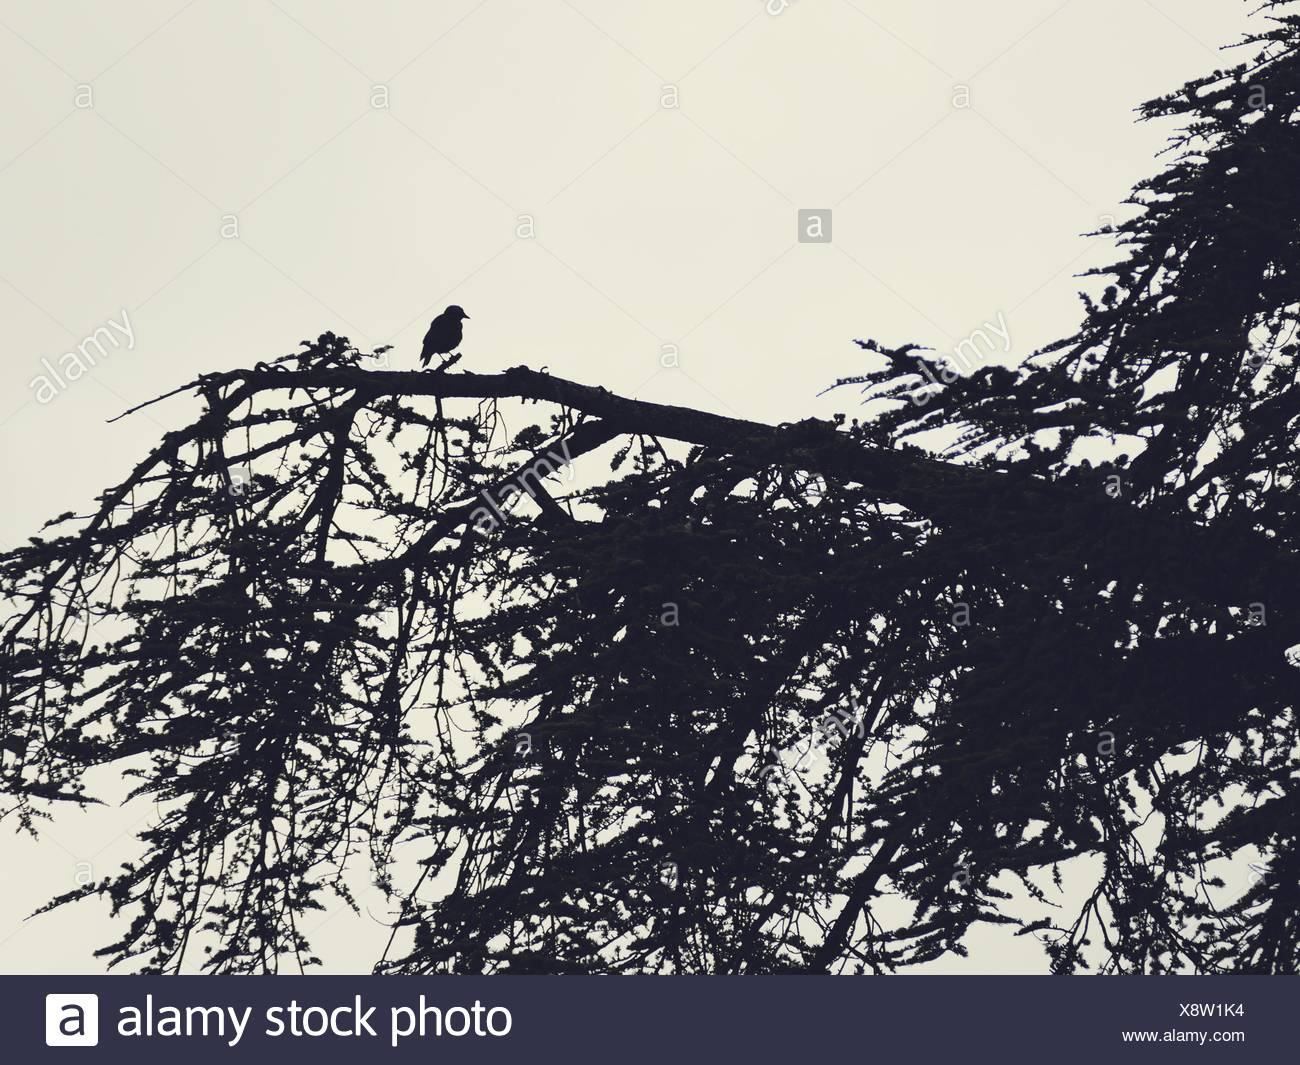 Silhouette Of Bird Siting On Branch